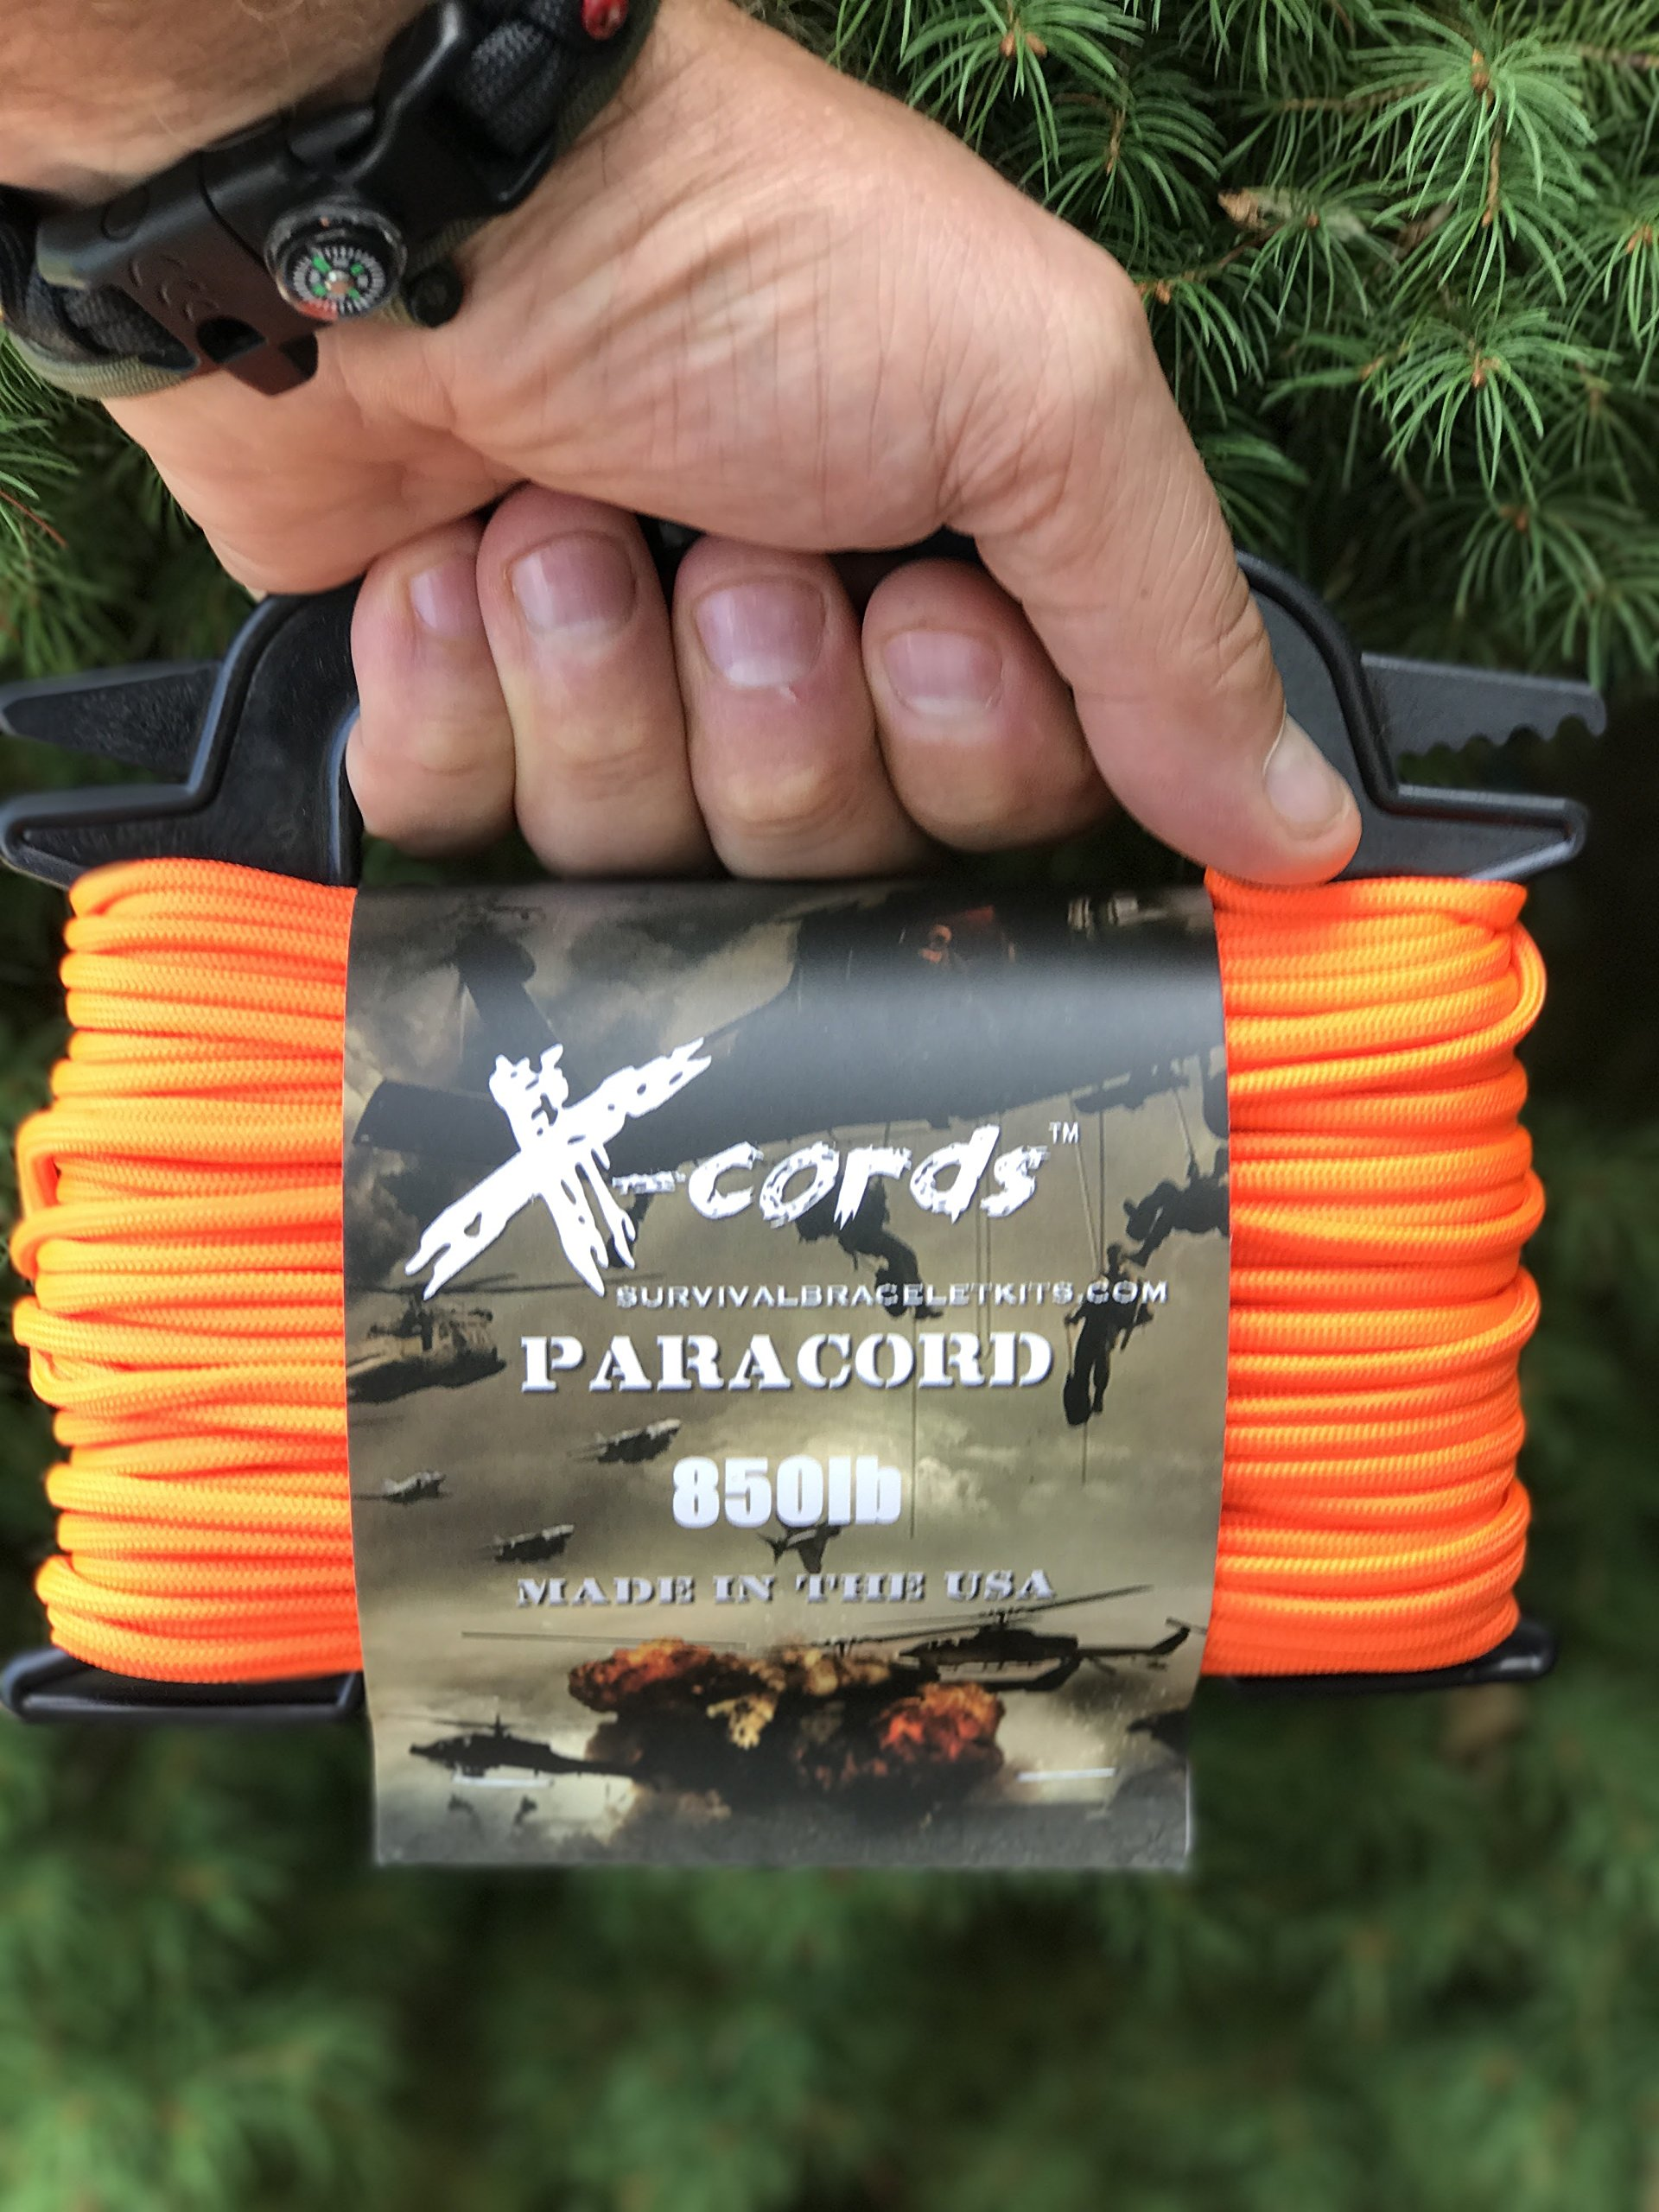 X-CORDS Paracord 850 Lb Stronger Than 550 and 750 Made by Us Government Certified Contractor (100' Orange ON Spool 850LB) by X-CORDS (Image #2)